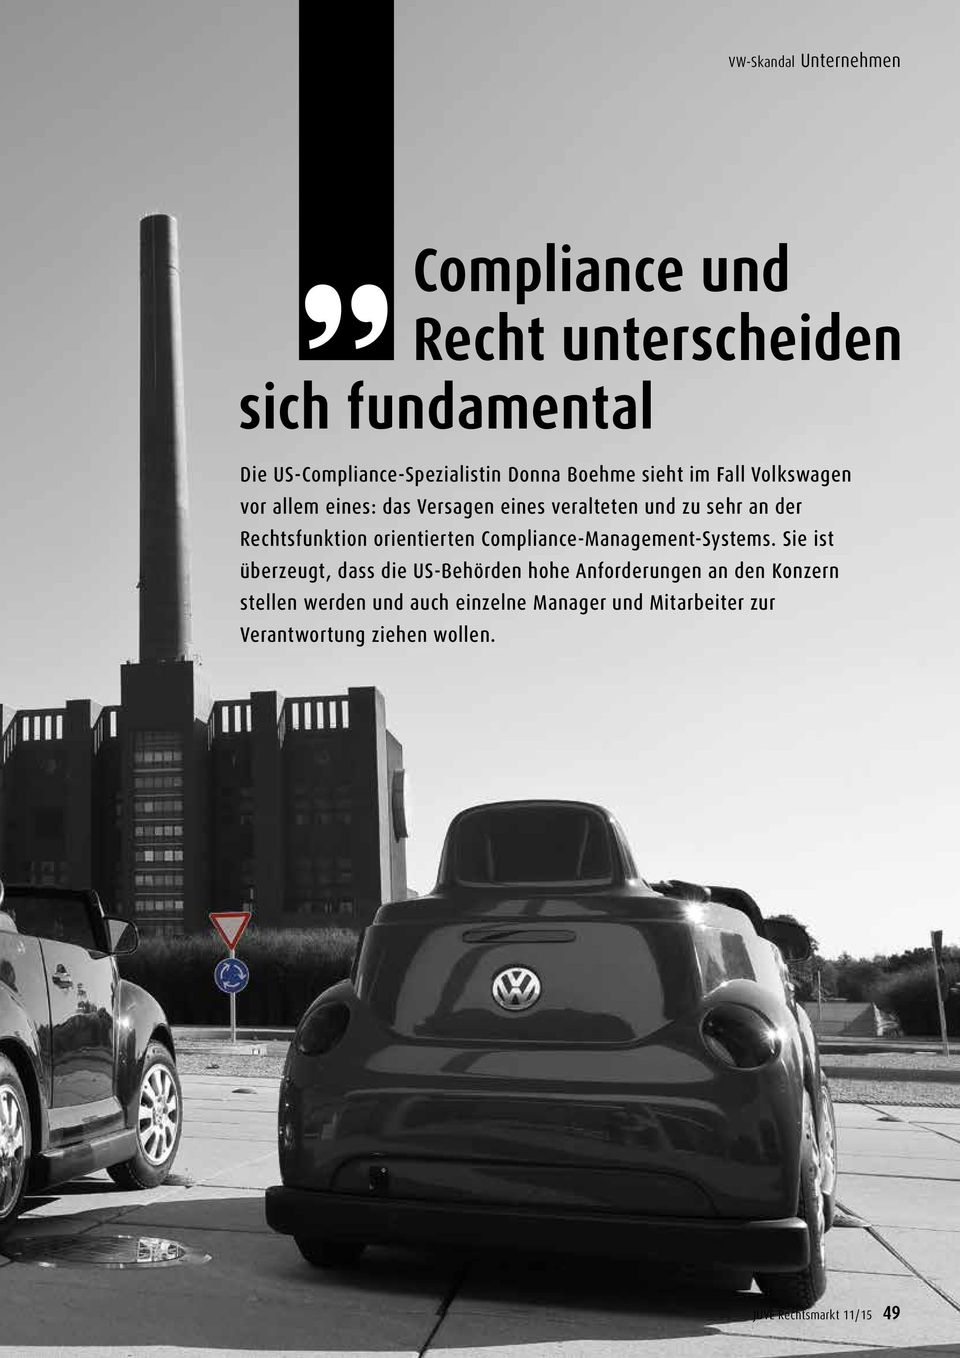 orientierten Compliance-Management-Systems.